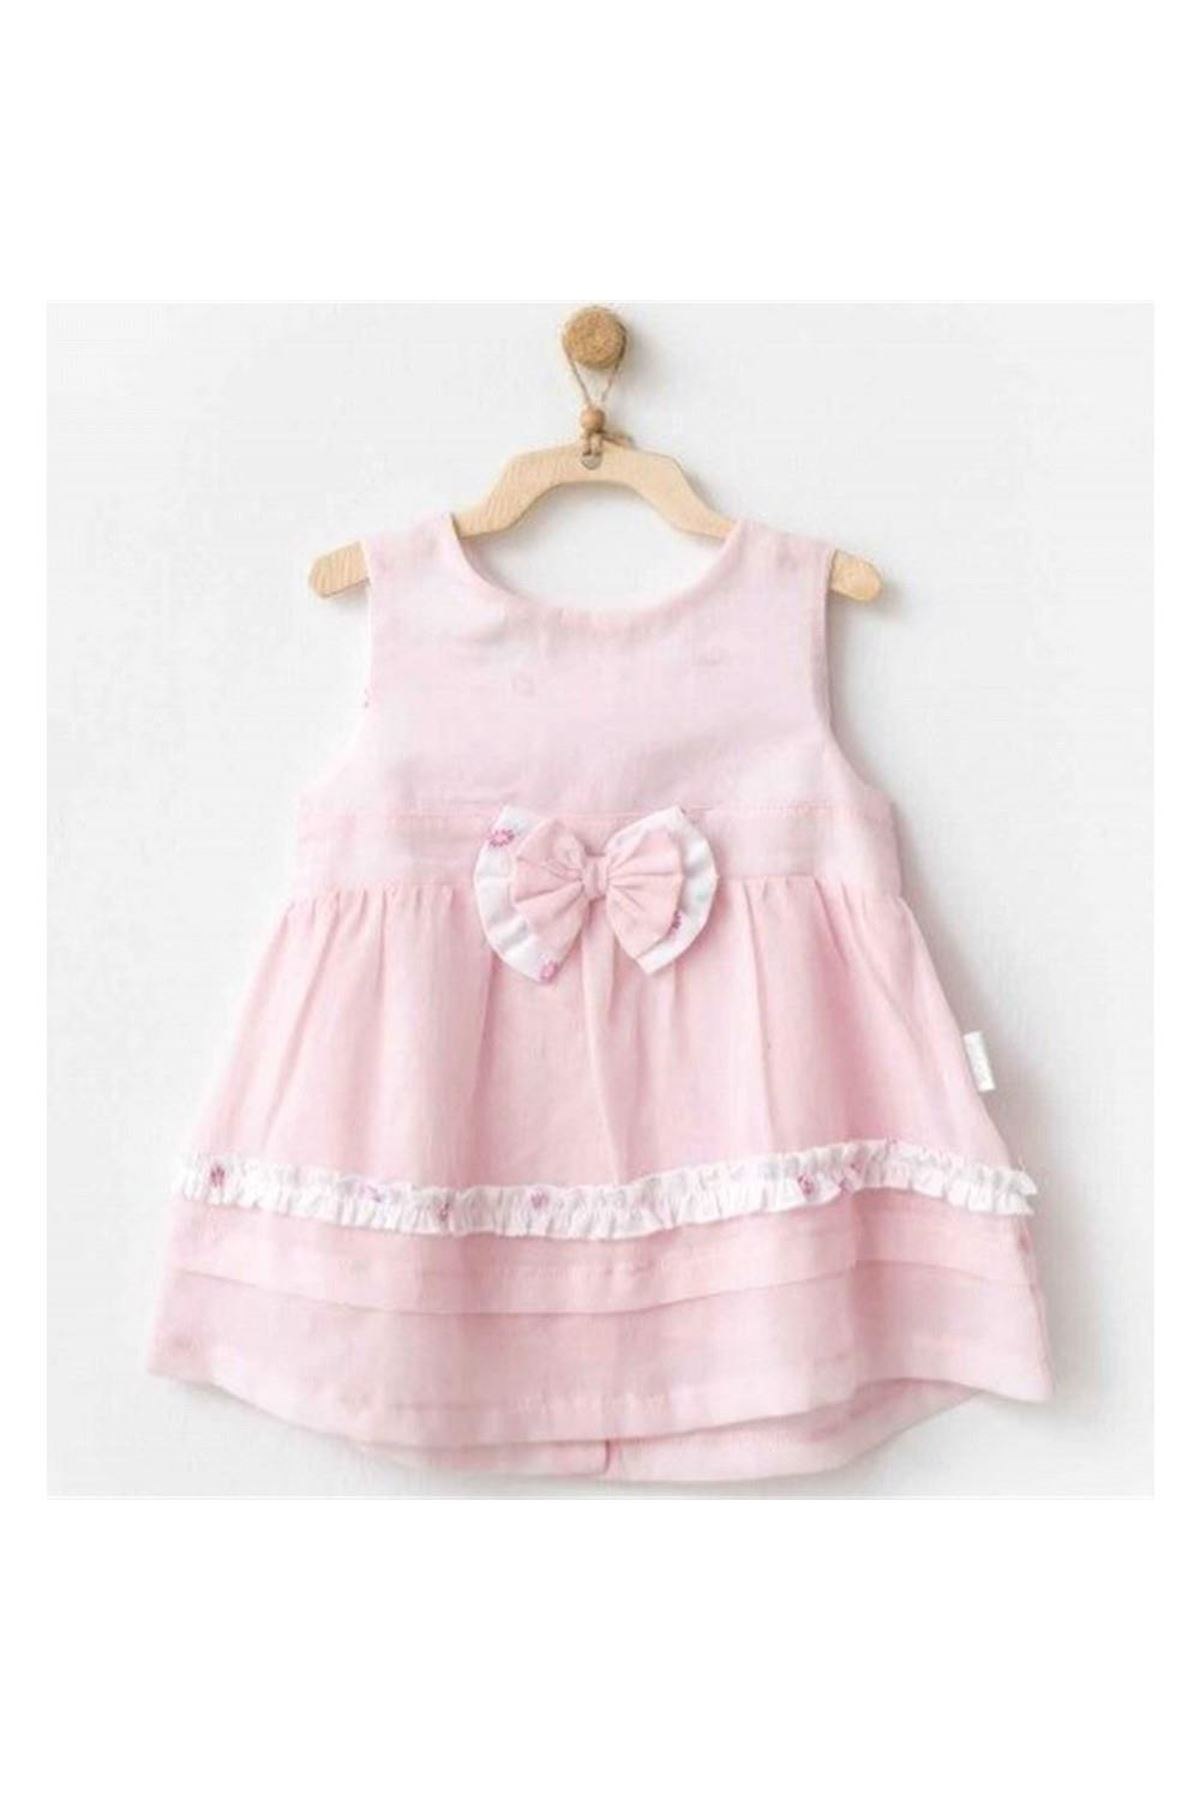 Andywawa AC20551 My Little Bunny Dream Elbise Pink